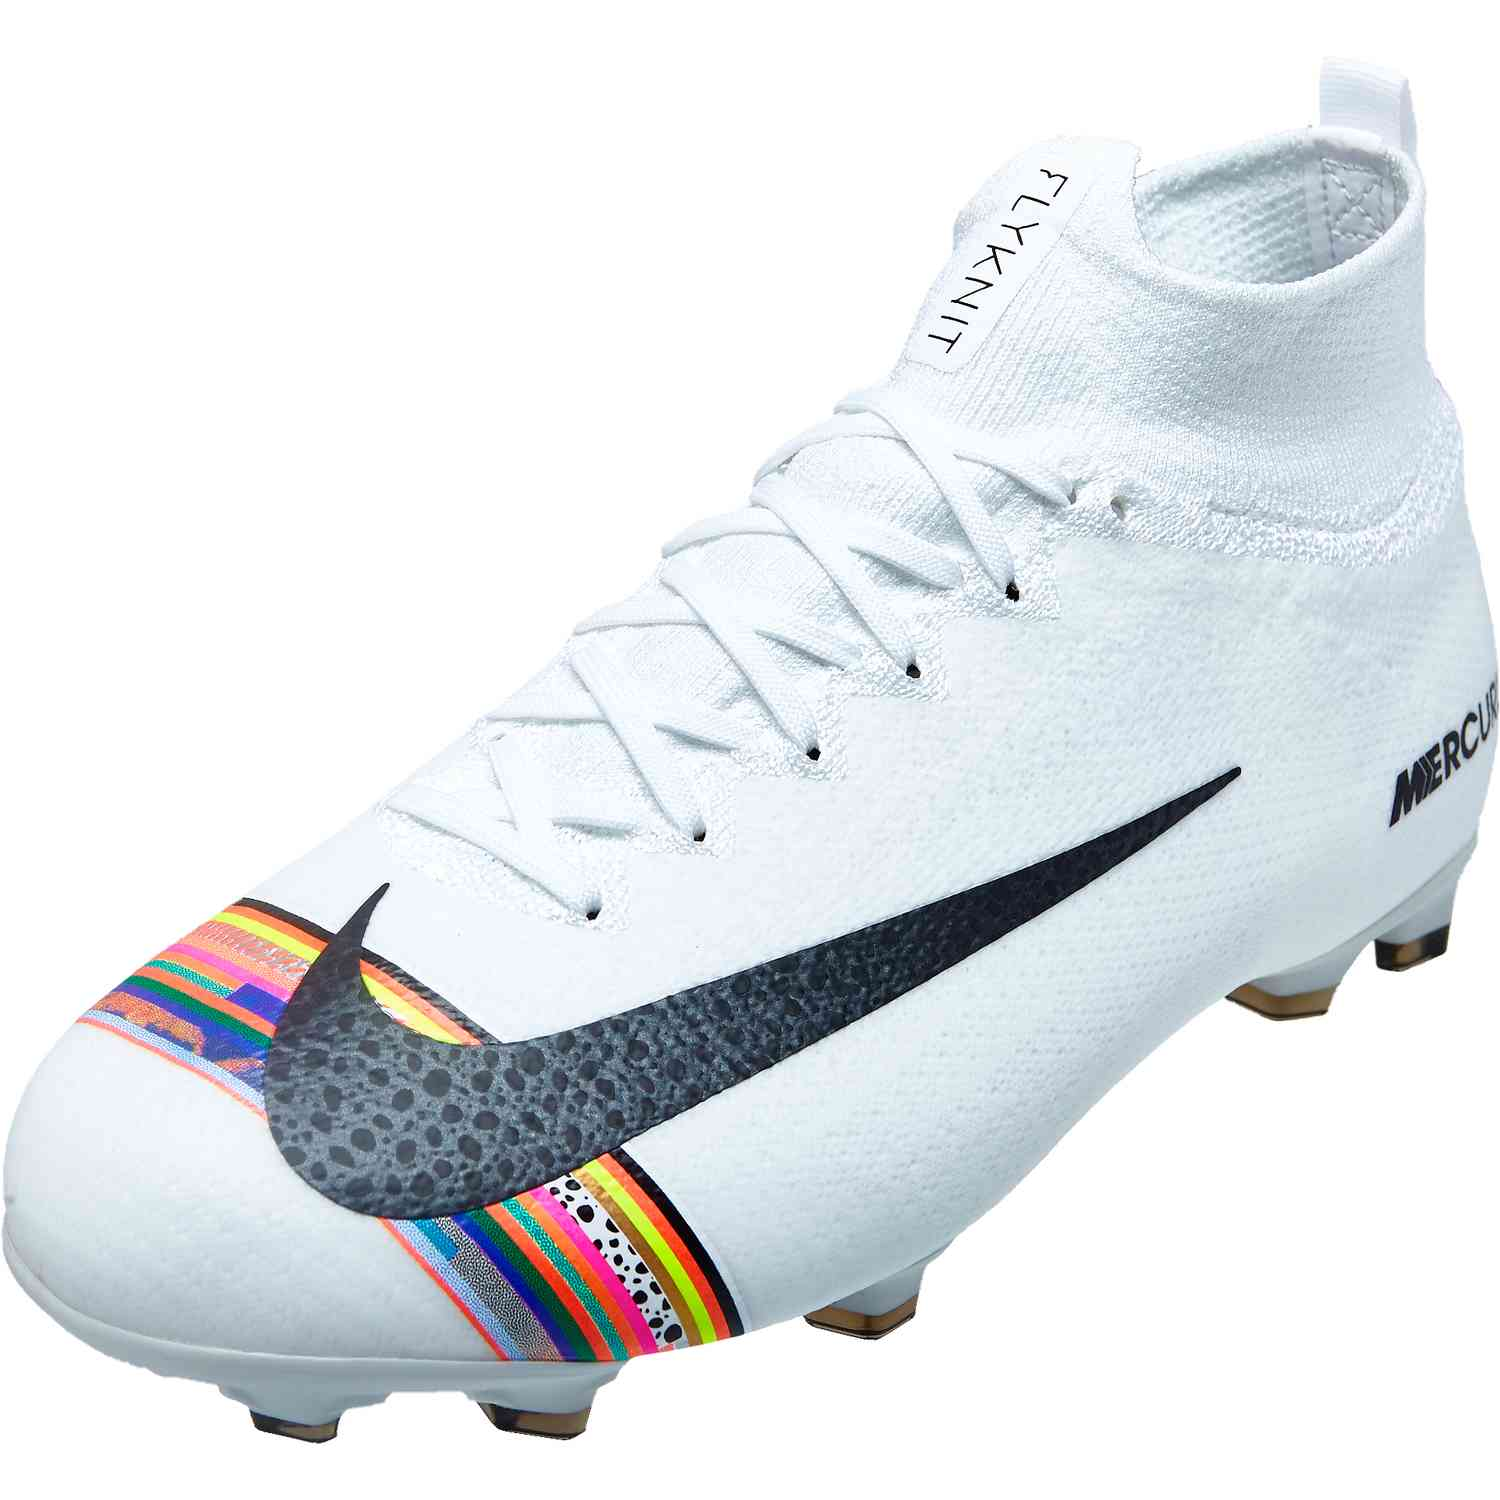 36310ac7f741 Kids Nike Mercurial Superfly 6 Elite FG - Level Up - SoccerPro